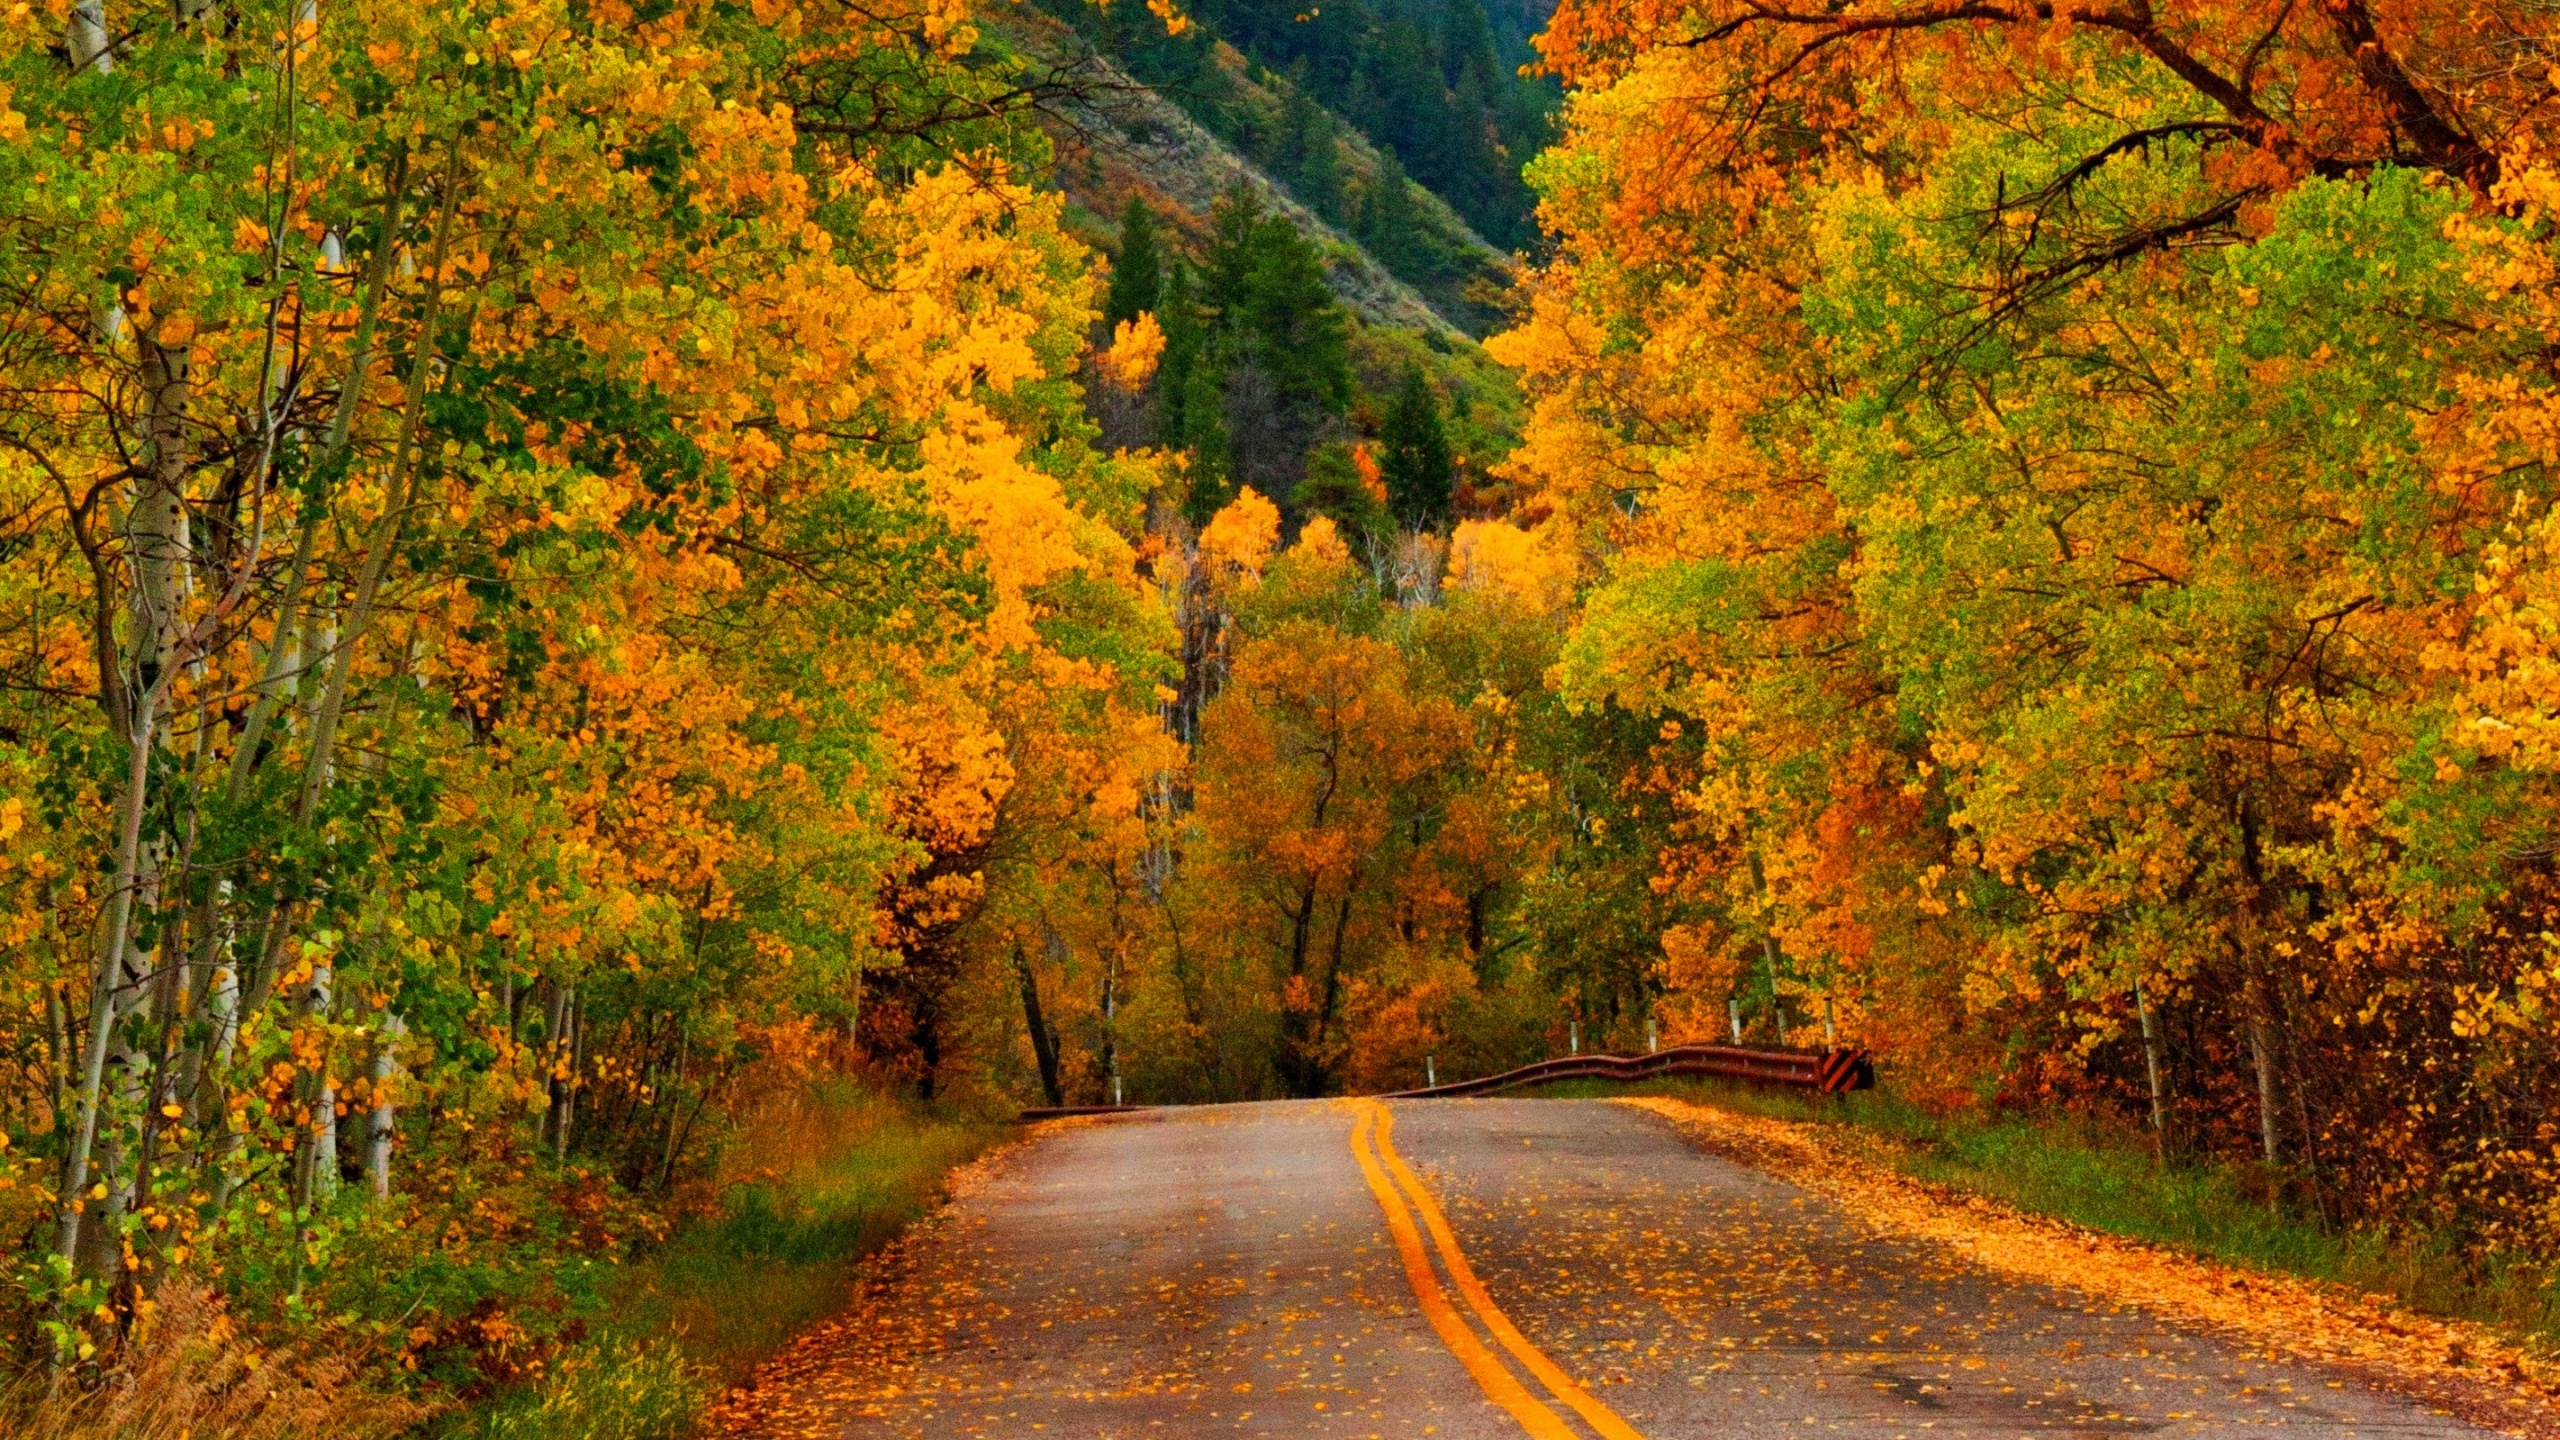 Nature Autumn Forest Park Road Wallpapers 2560x1440 2116265